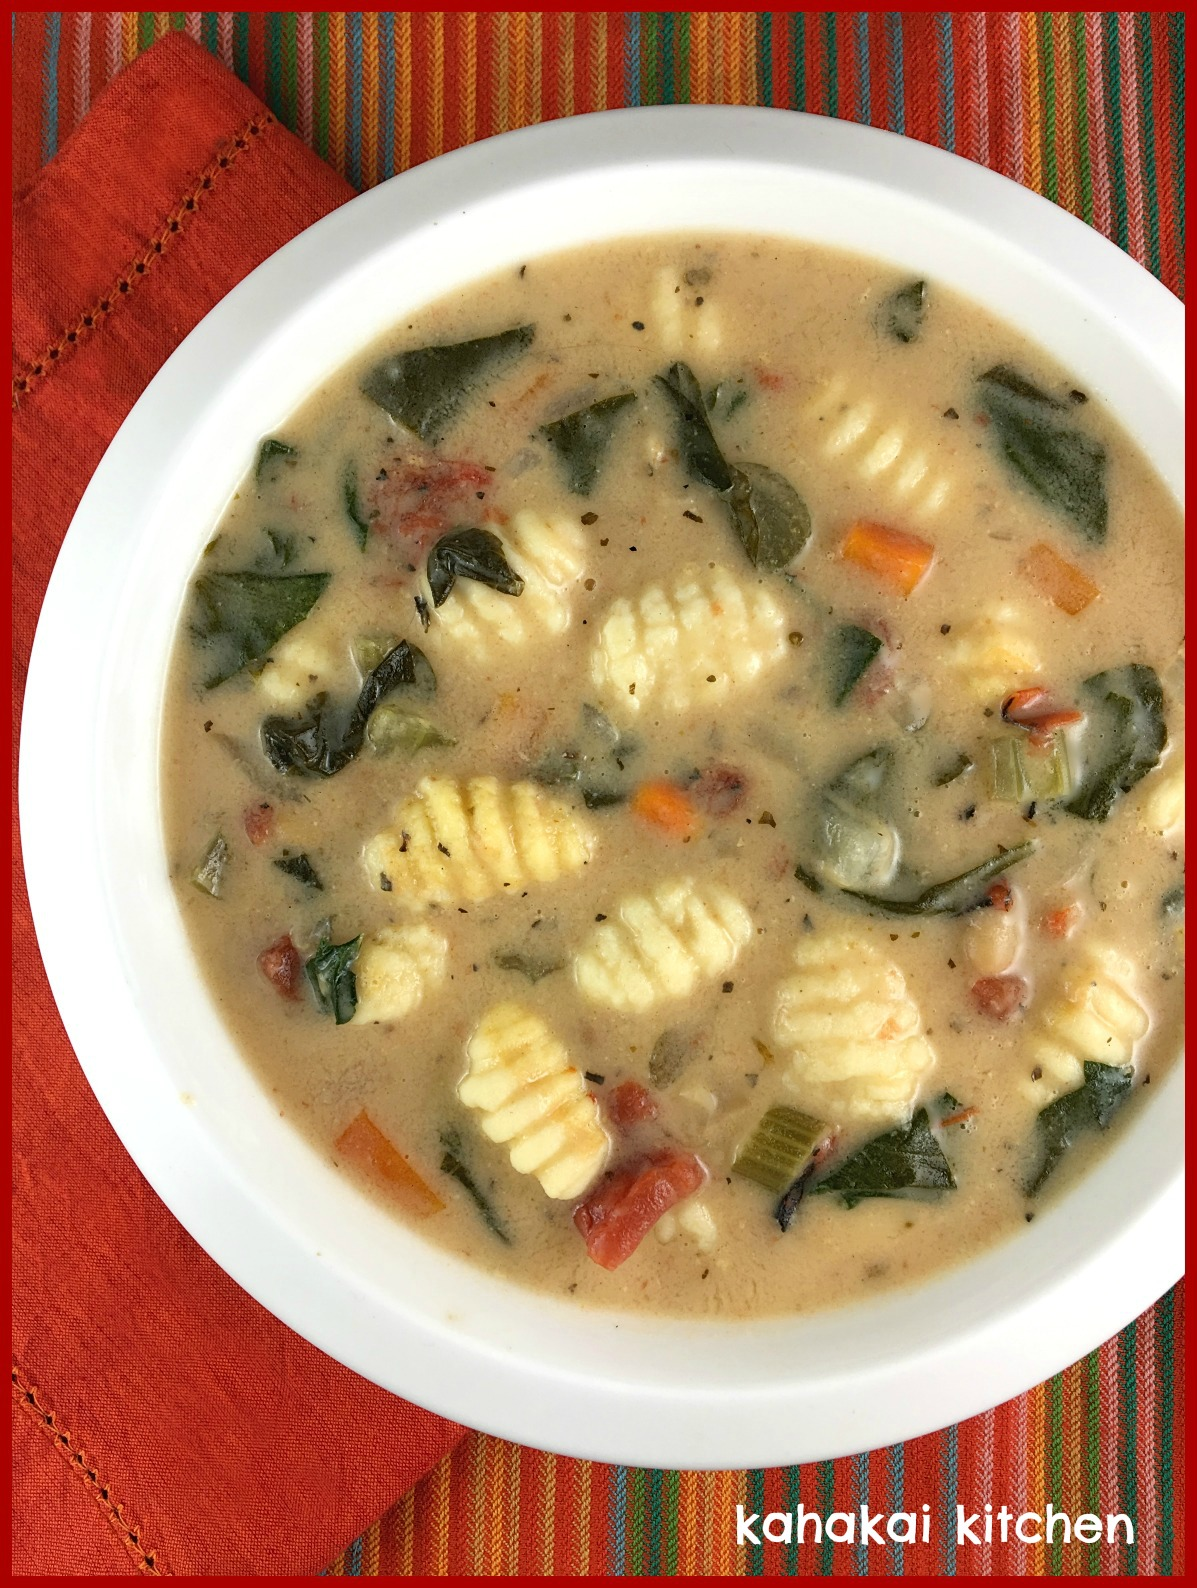 Kahakai Kitchen: Creamy Gnocchi and Bean Soup, Topped with Spinach ...